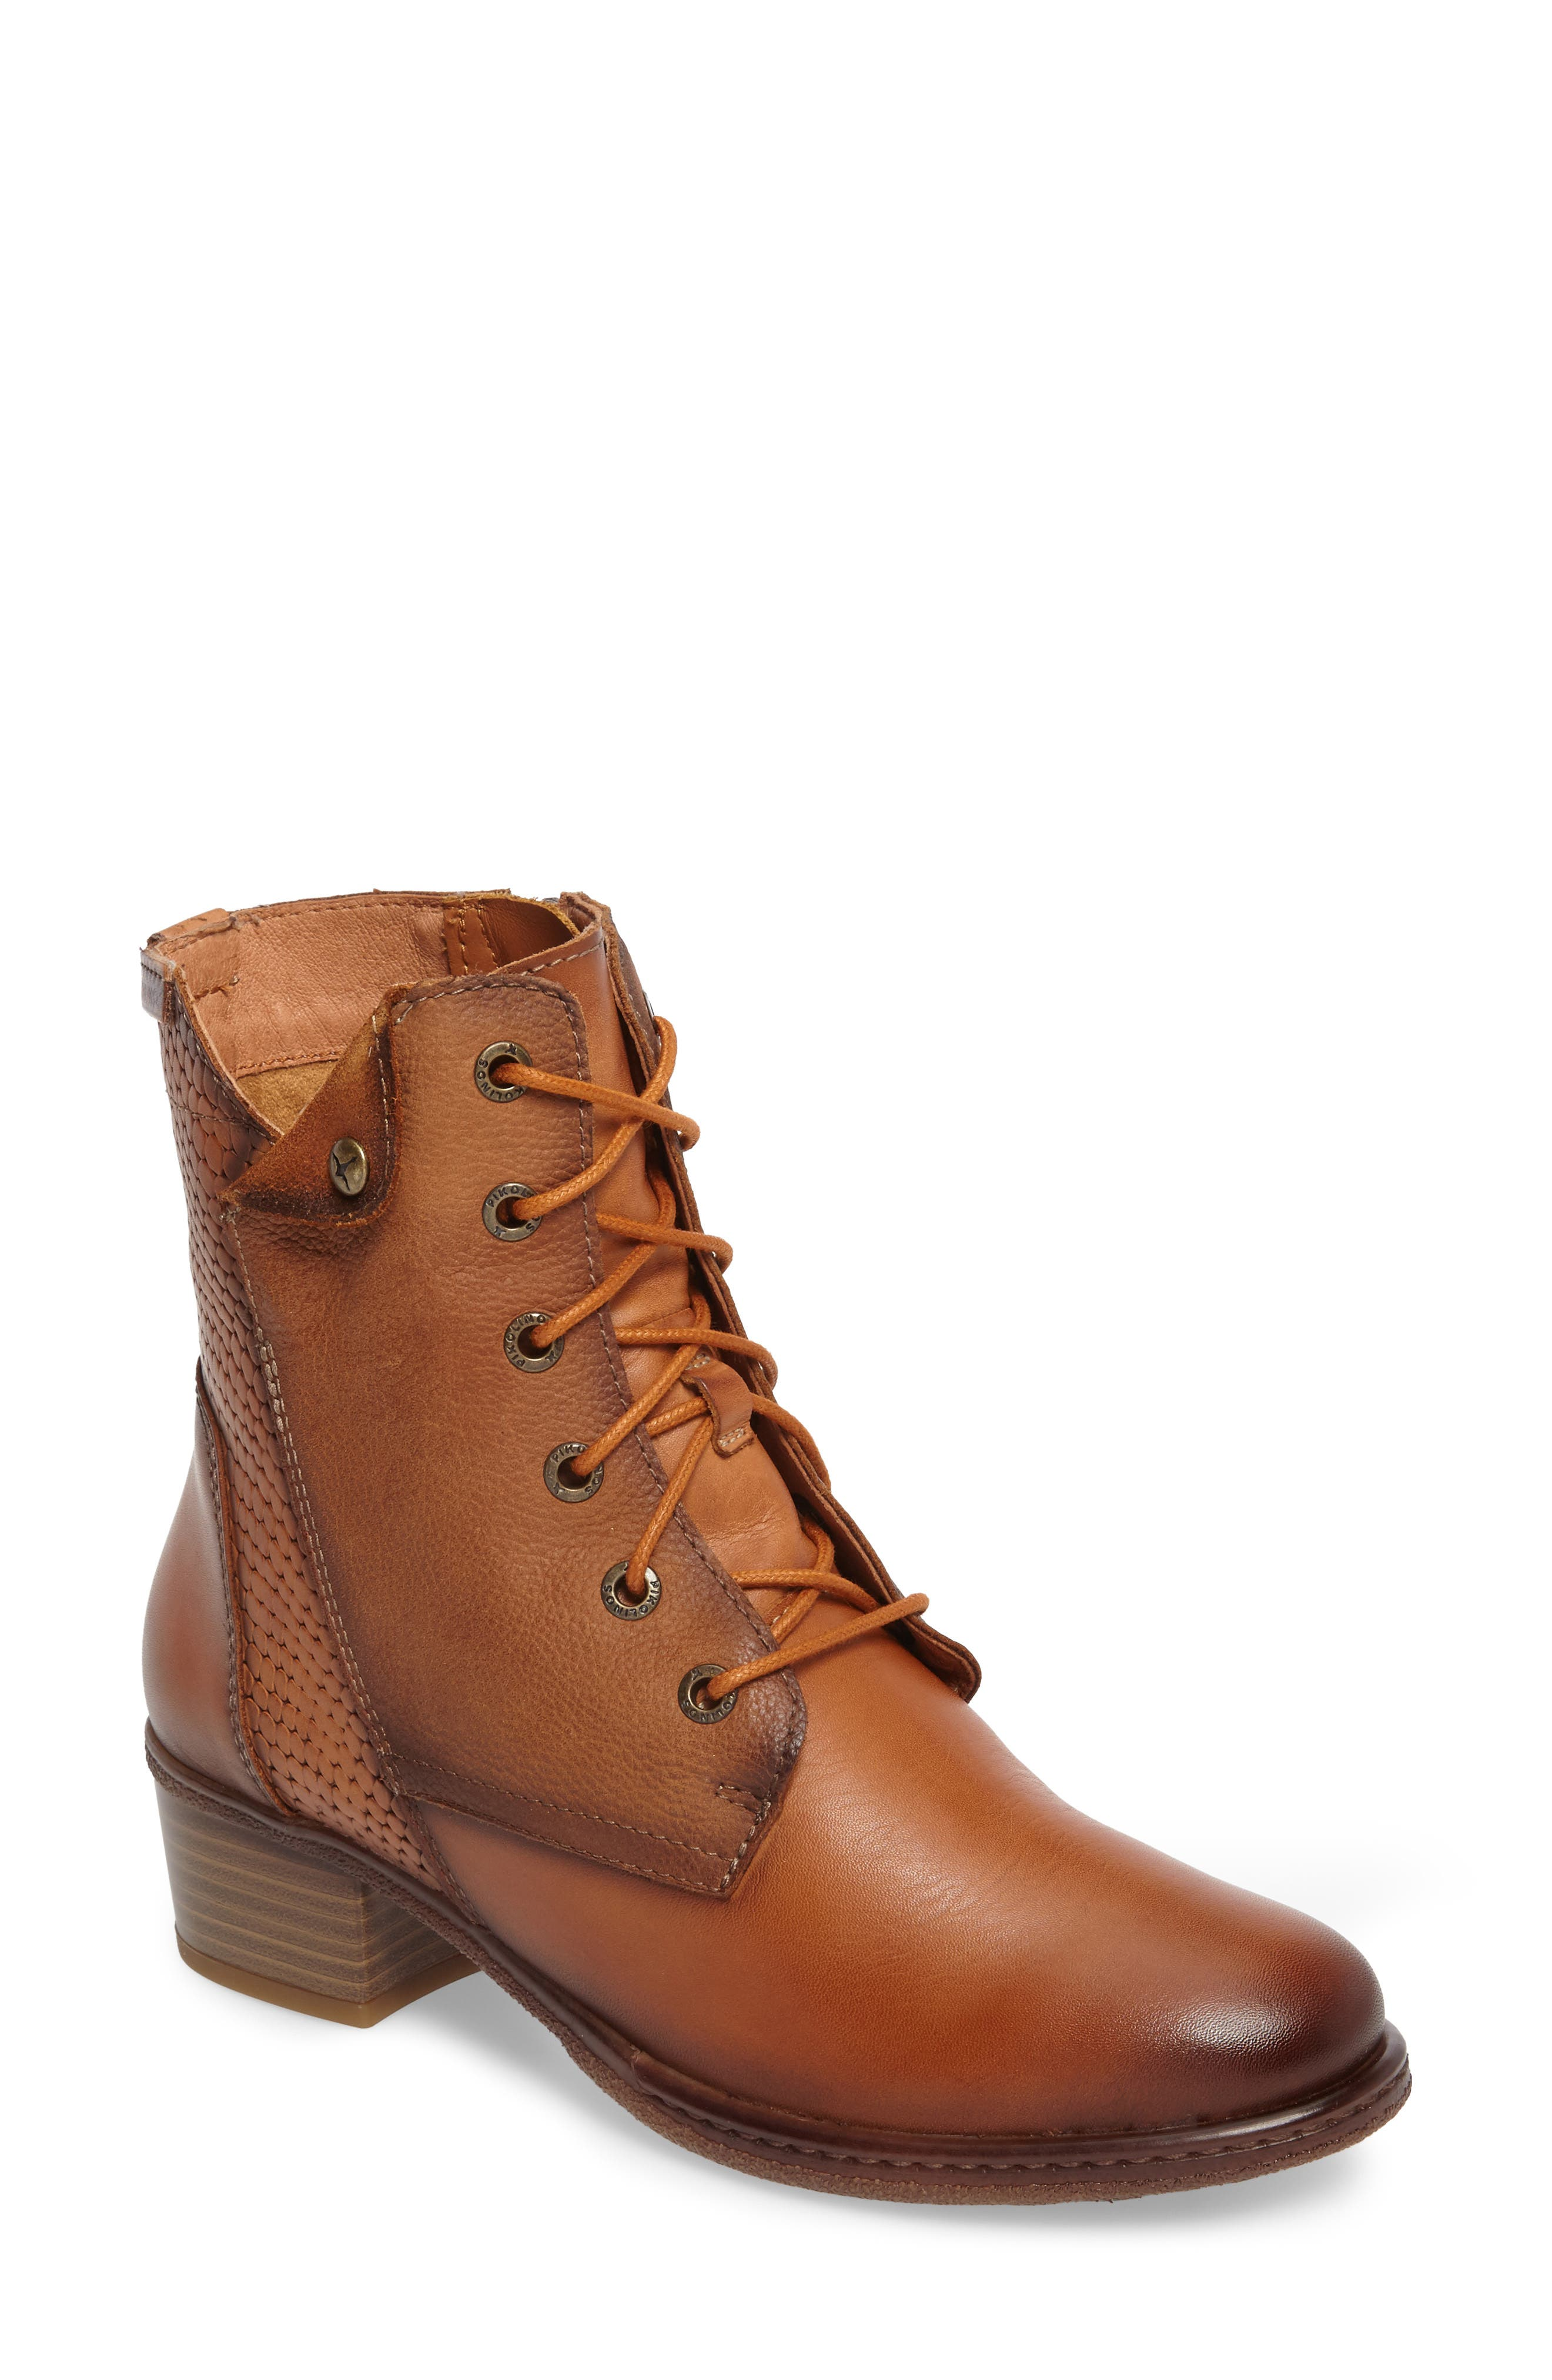 Zaragoza Water Resistant Lace-Up Boot,                         Main,                         color, 207